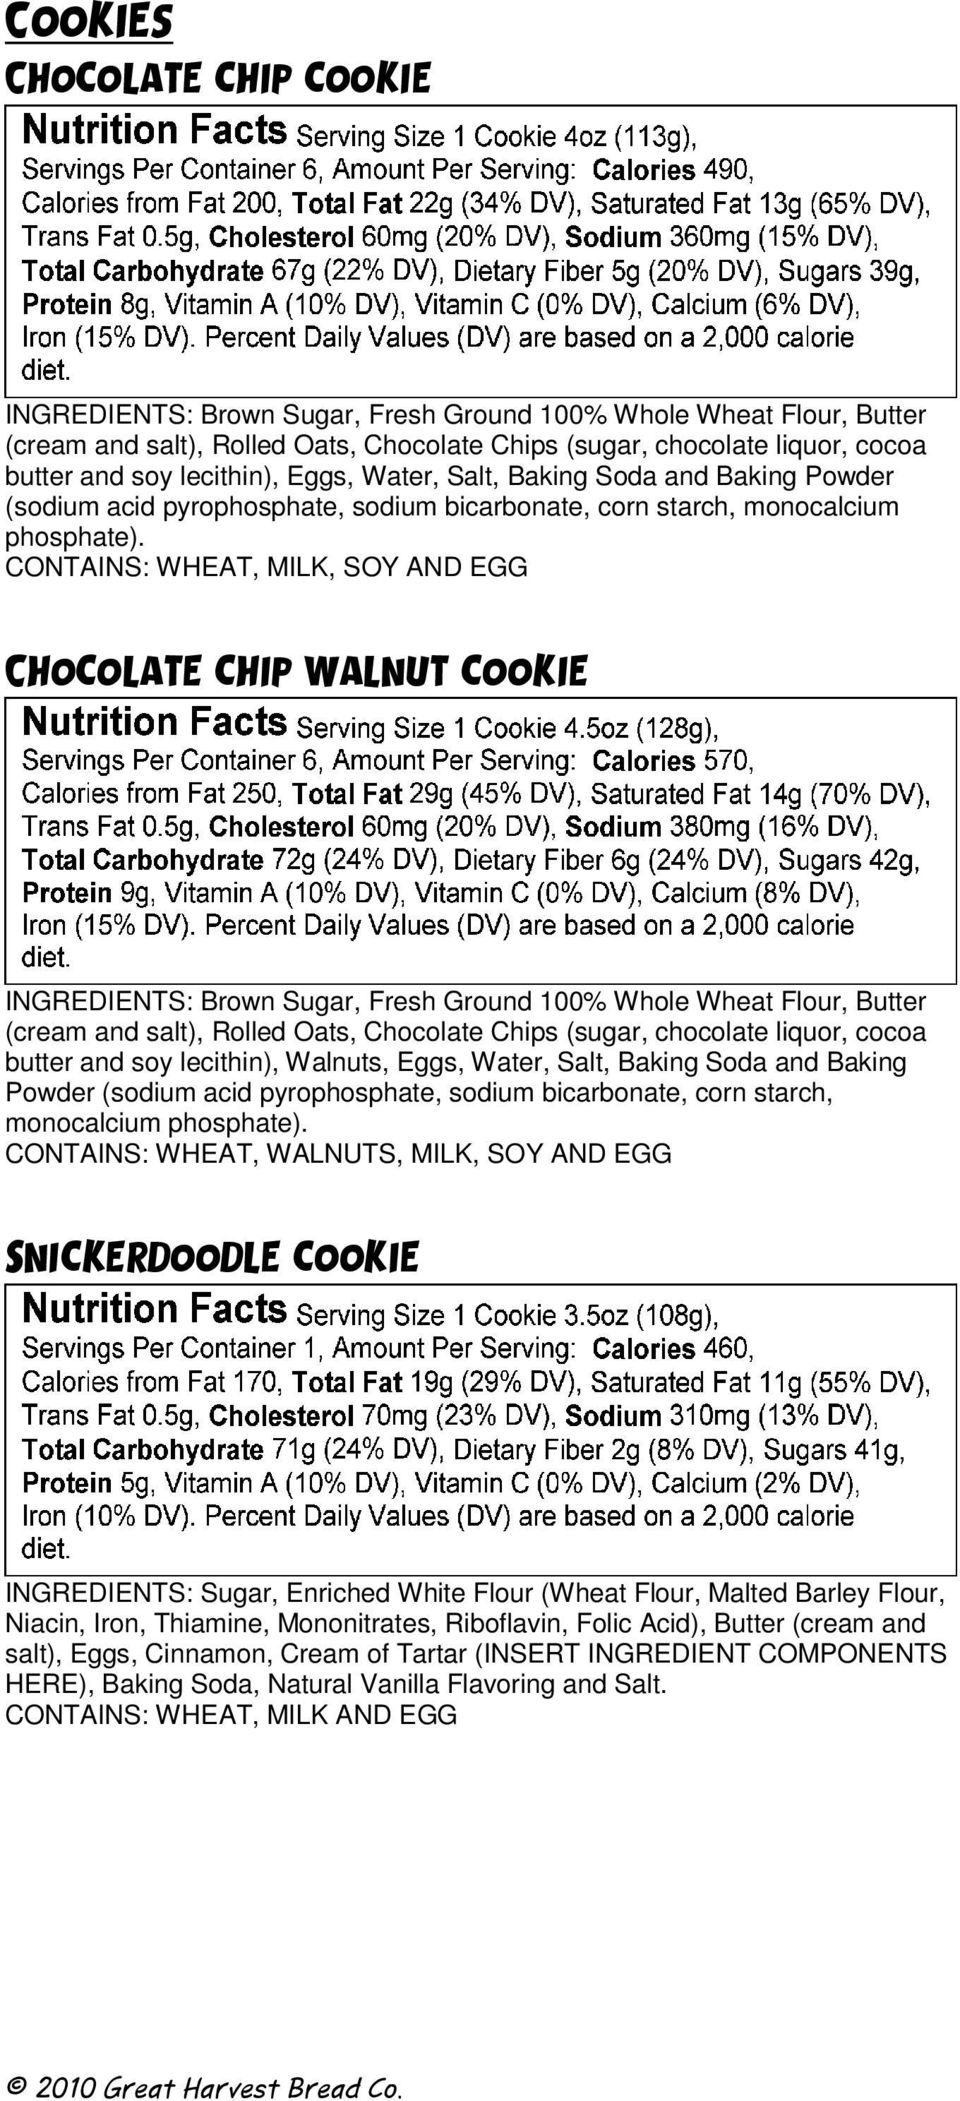 Chocolate chip walnut cookie INGREDIENTS: Brown Sugar, Fresh Ground 100% Whole Wheat Flour, Butter (cream and salt), Rolled Oats, Chocolate Chips (sugar, chocolate liquor, cocoa butter and soy